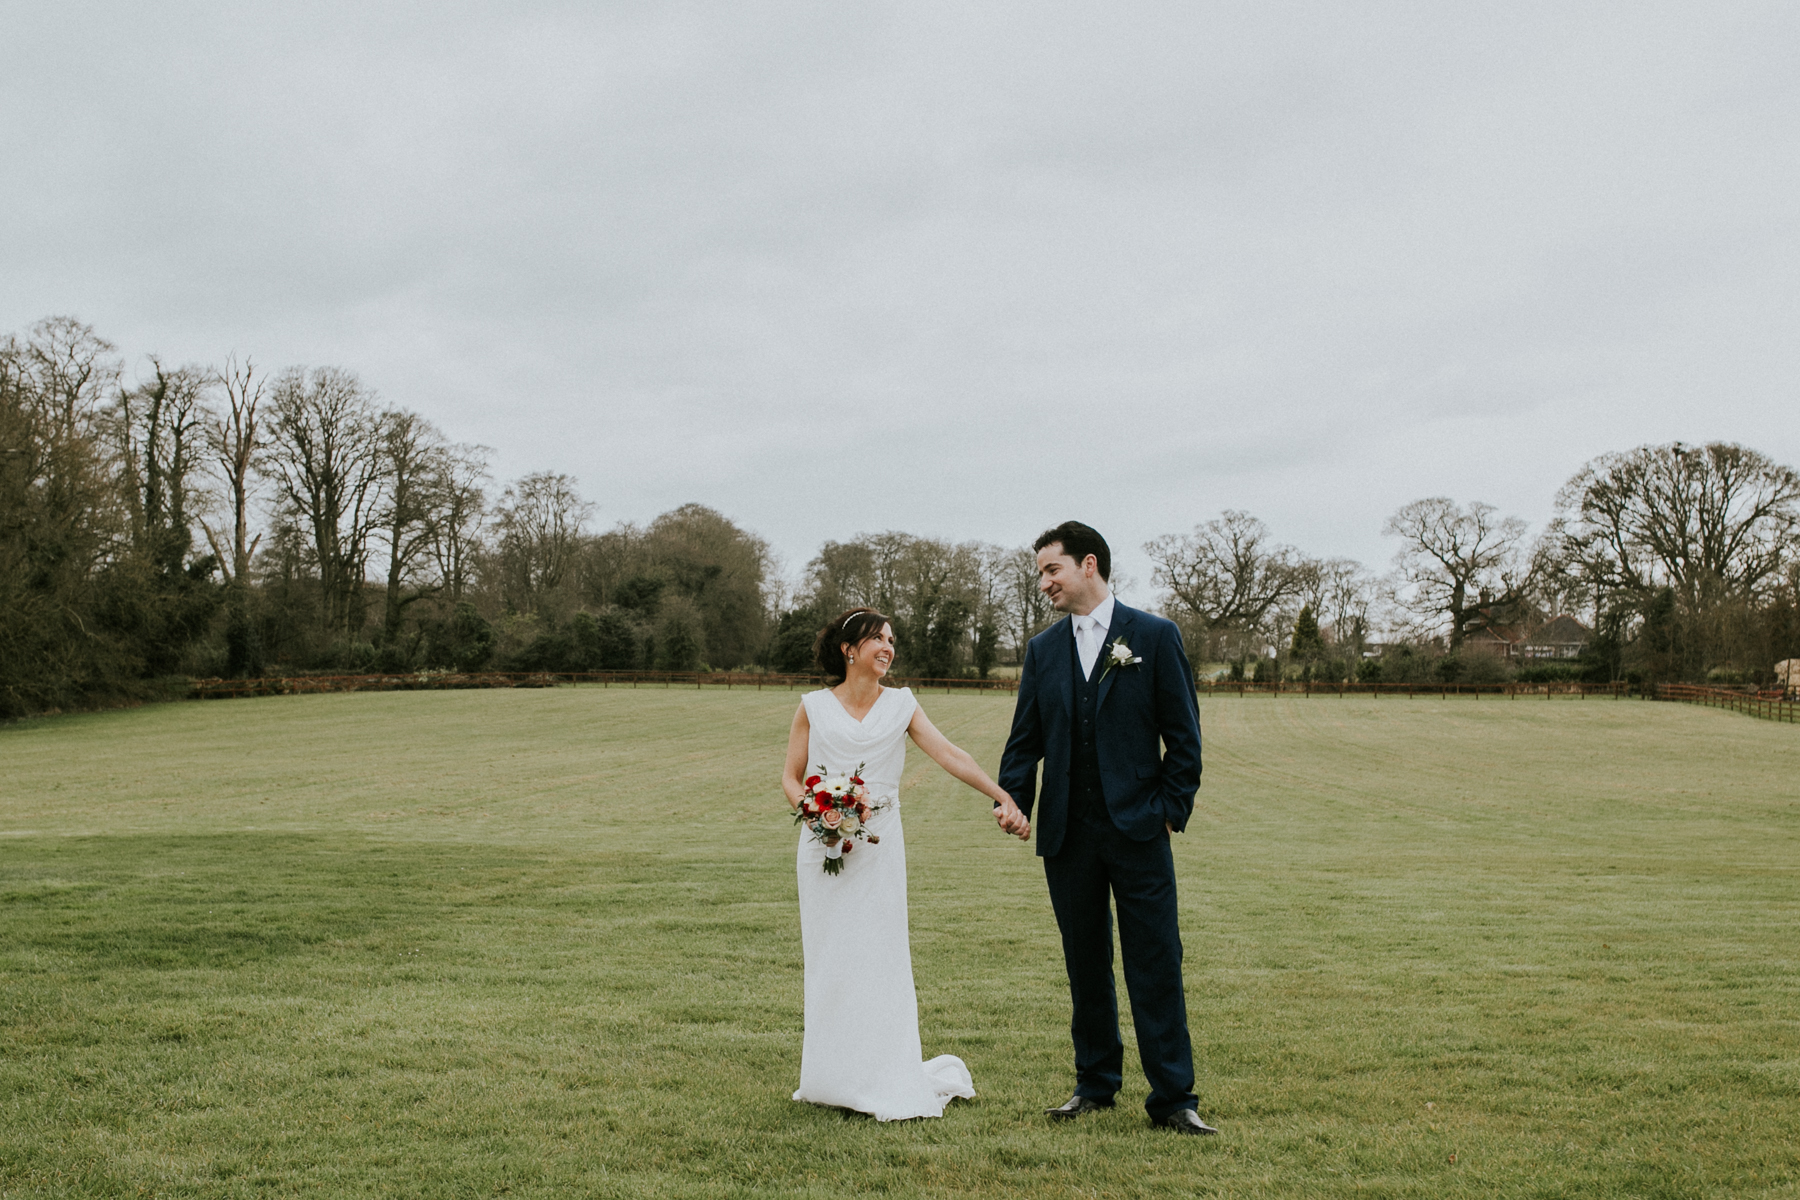 liviafigueiredo_weddingphotography_boyne_hill_house_estate_379.jpg